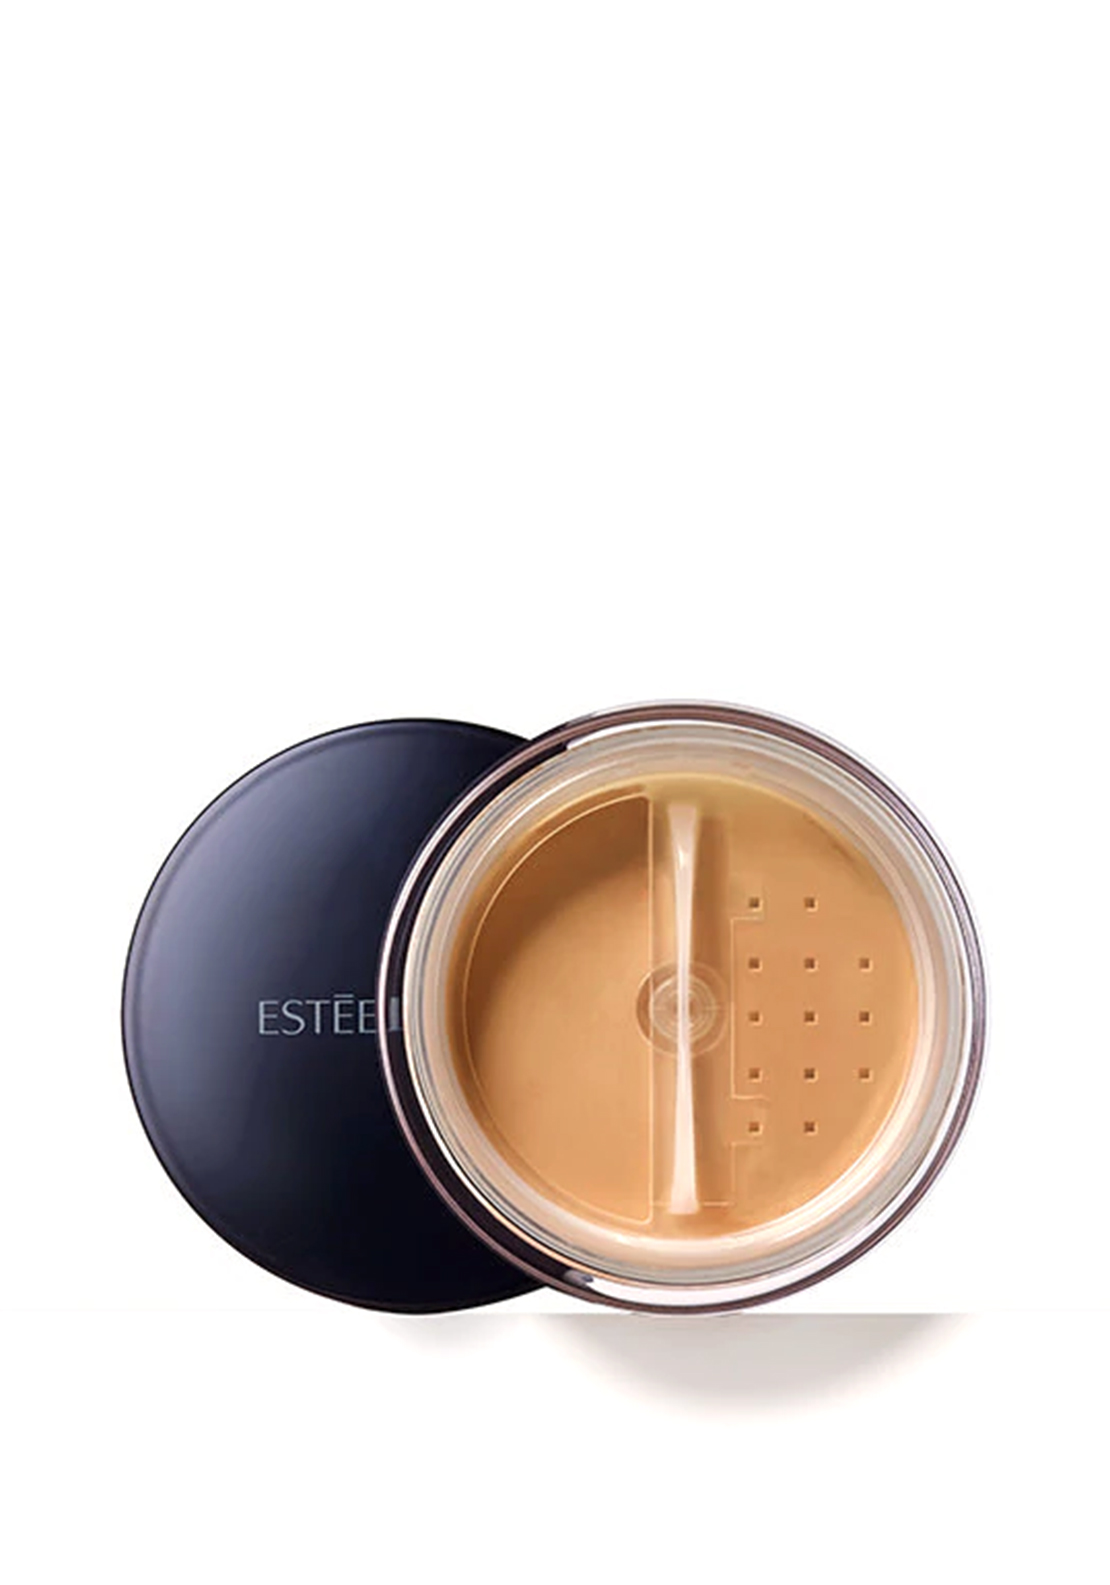 Estee Lauder Perfecting Loose Powder, Medium